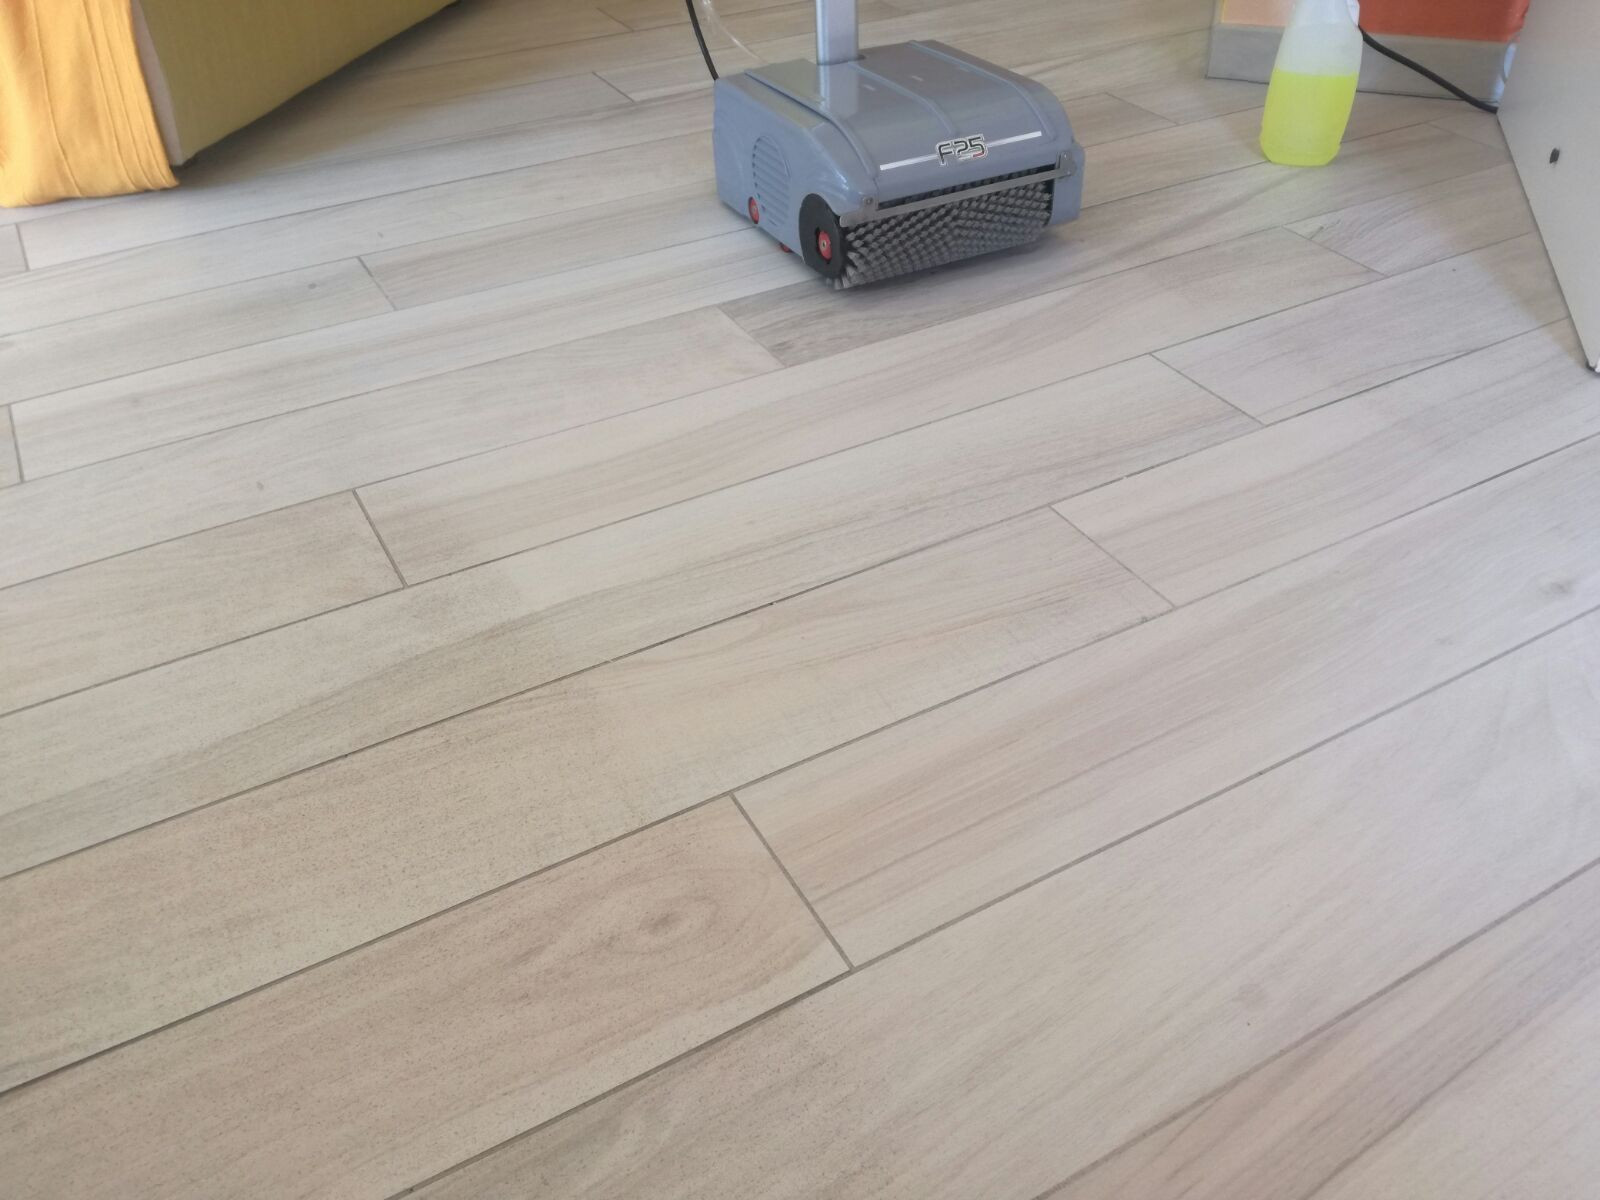 mohawk hardwood and laminate floor cleaner of laminate floor cleaner floor plan ideas within laminate floor cleaner professional floor scrubber floorwash f25 solving and collecting all